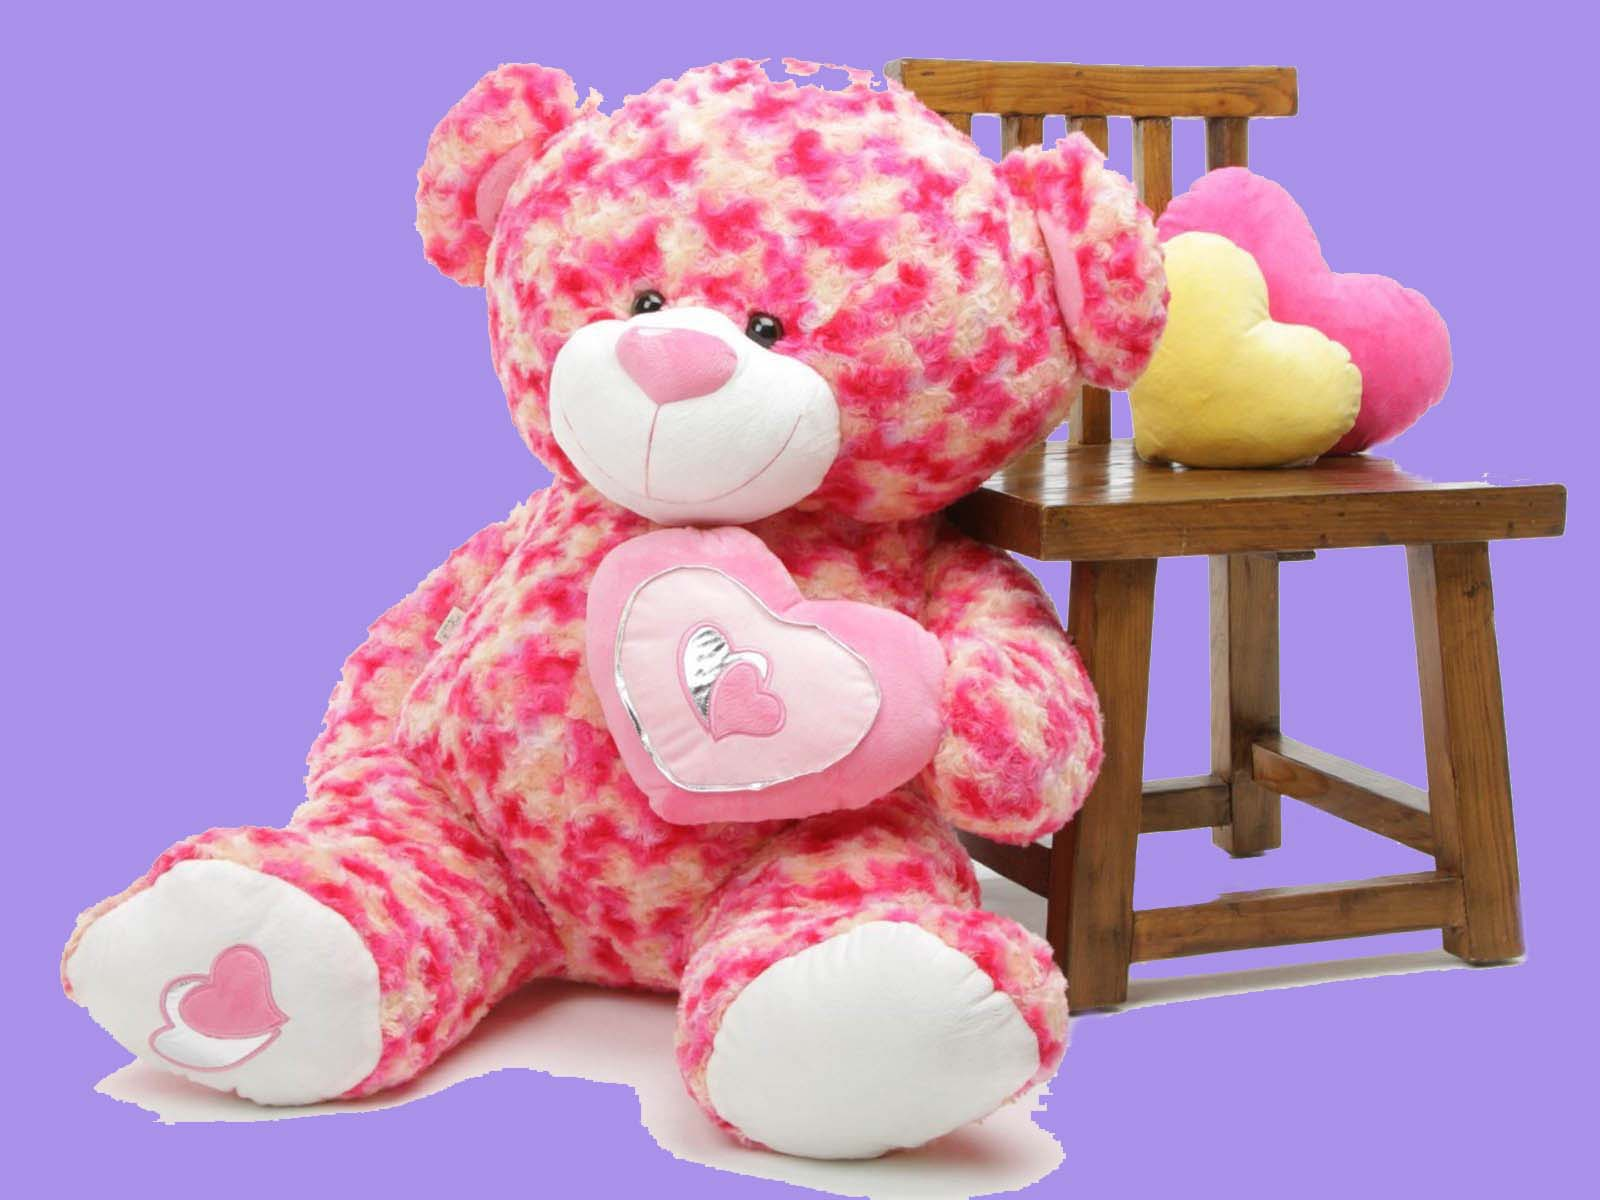 Teddy Bear Hd Wallpaper Hd Images Hd Pictures Backgrounds 1600x1200